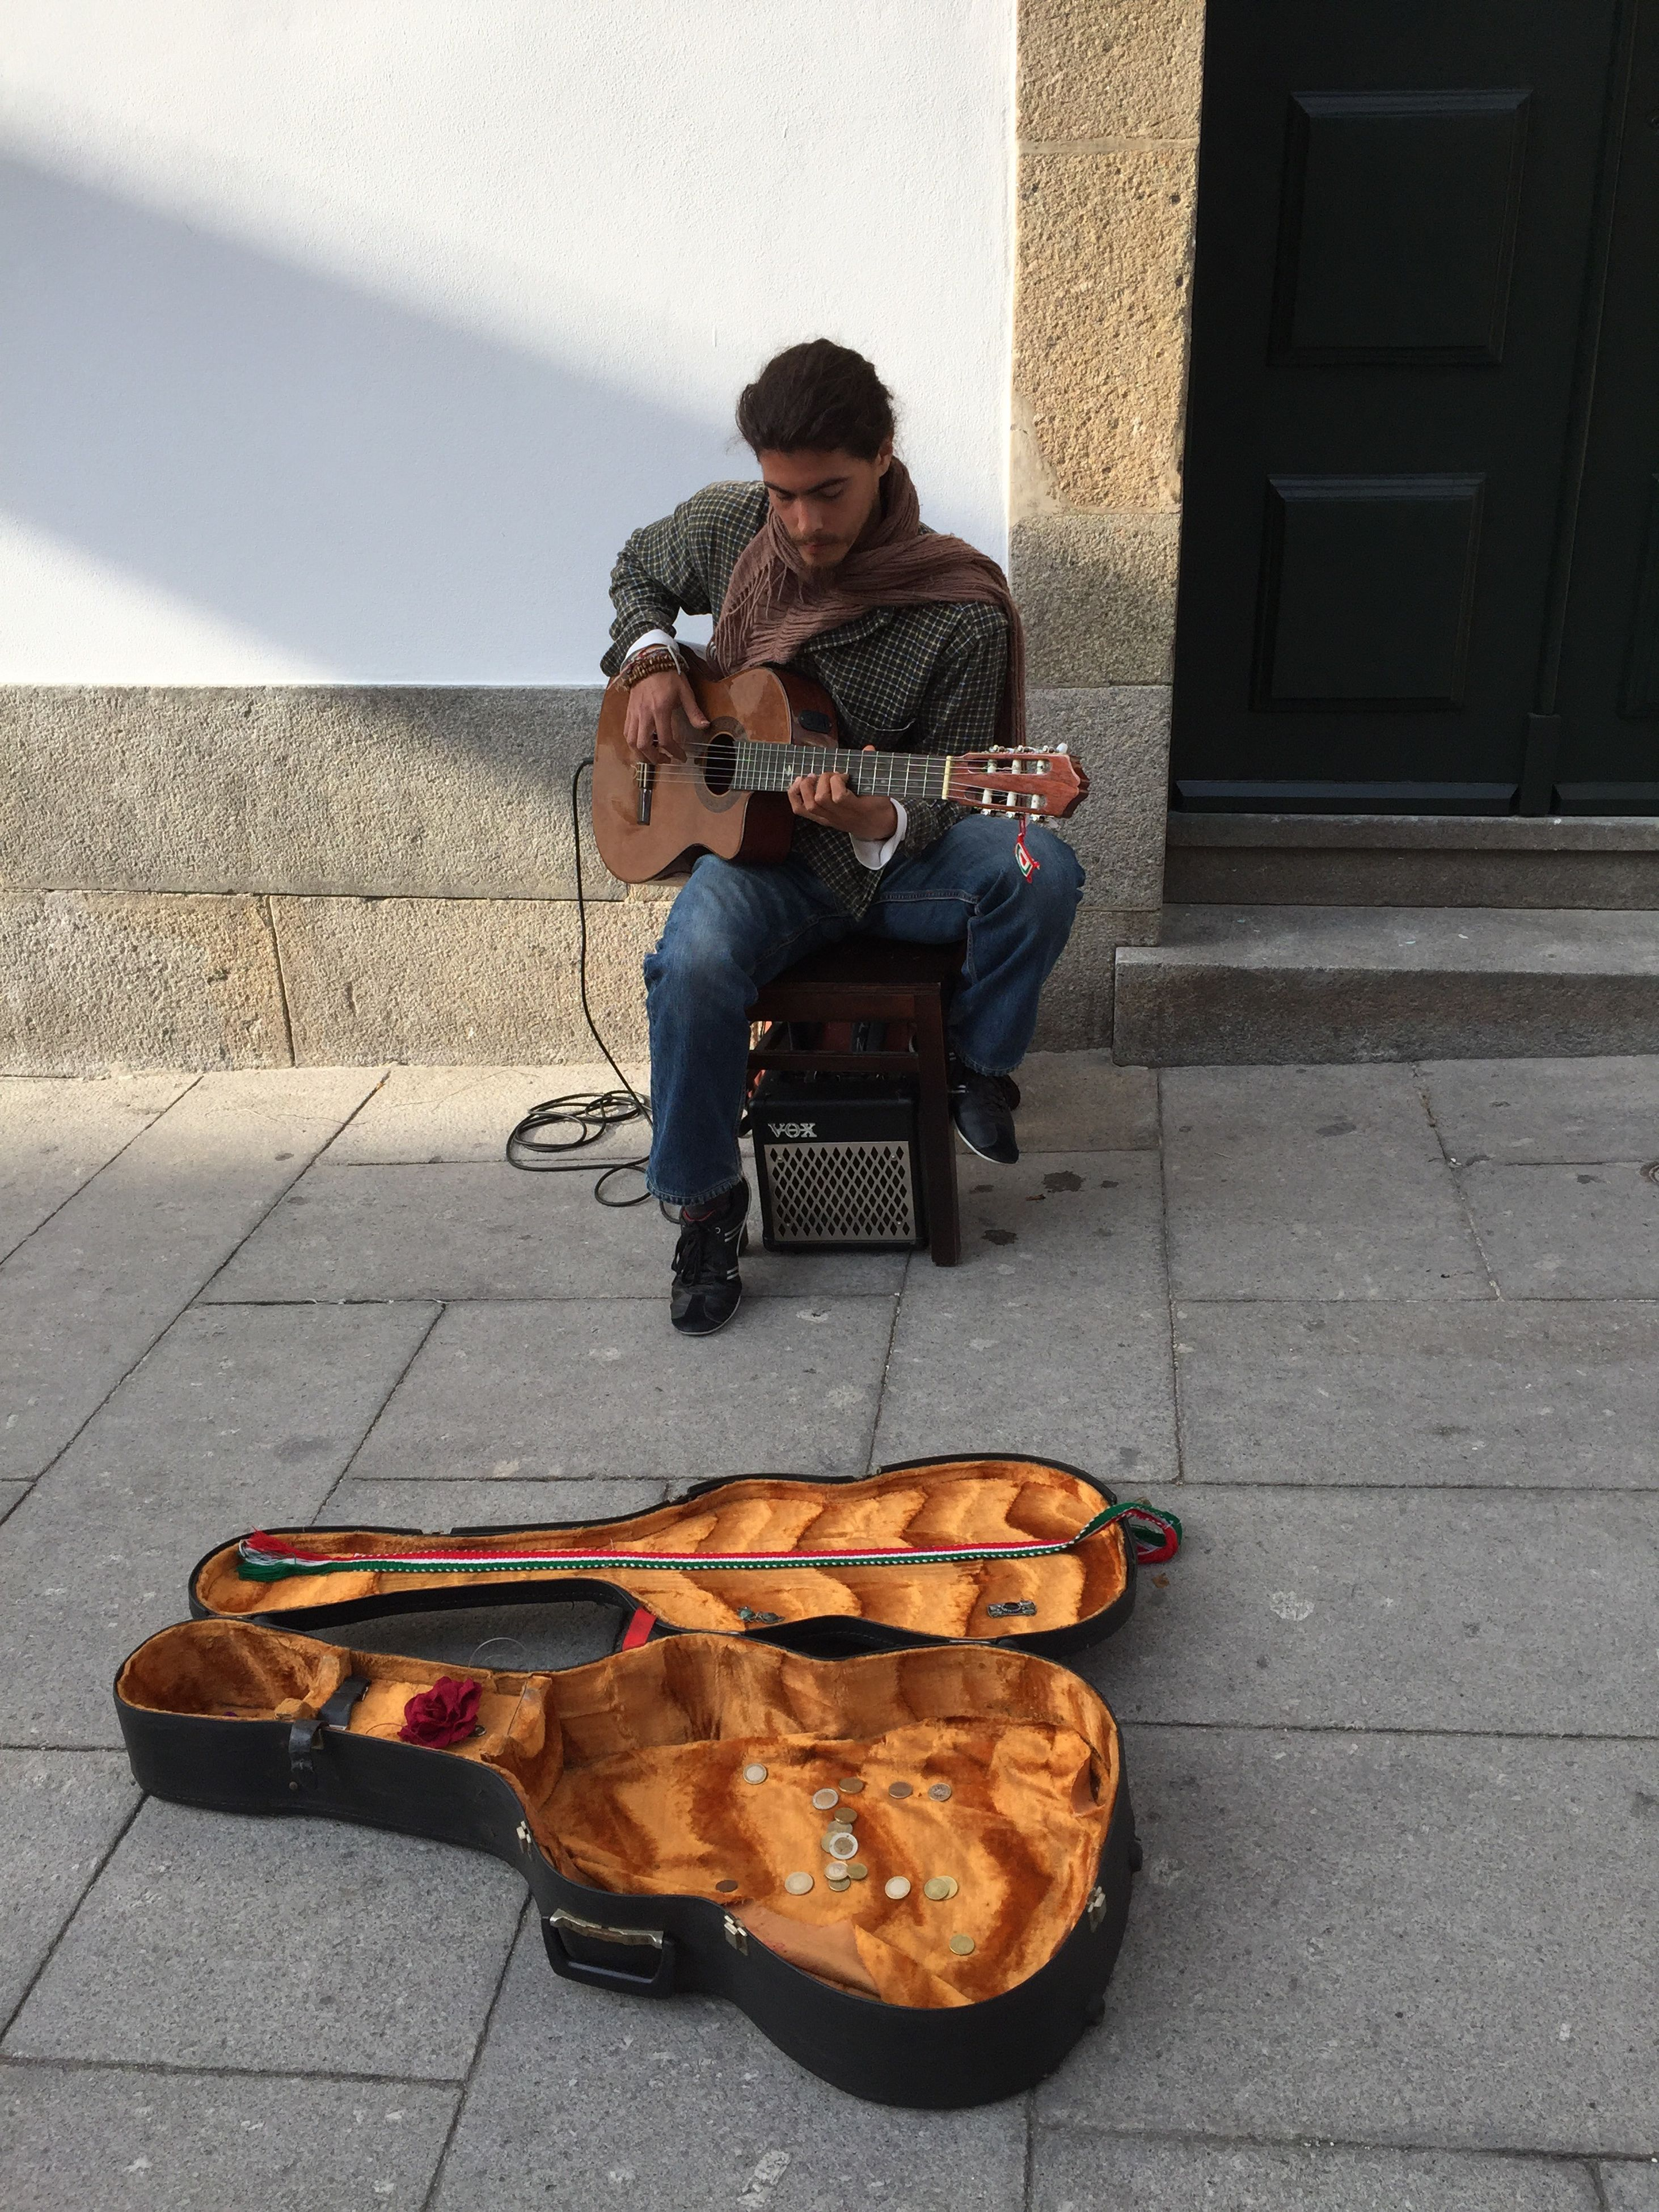 sitting, full length, one person, music, playing, musical instrument, guitar, casual clothing, leisure activity, musician, real people, shoe, outdoors, arts culture and entertainment, holding, men, day, lifestyles, young adult, people